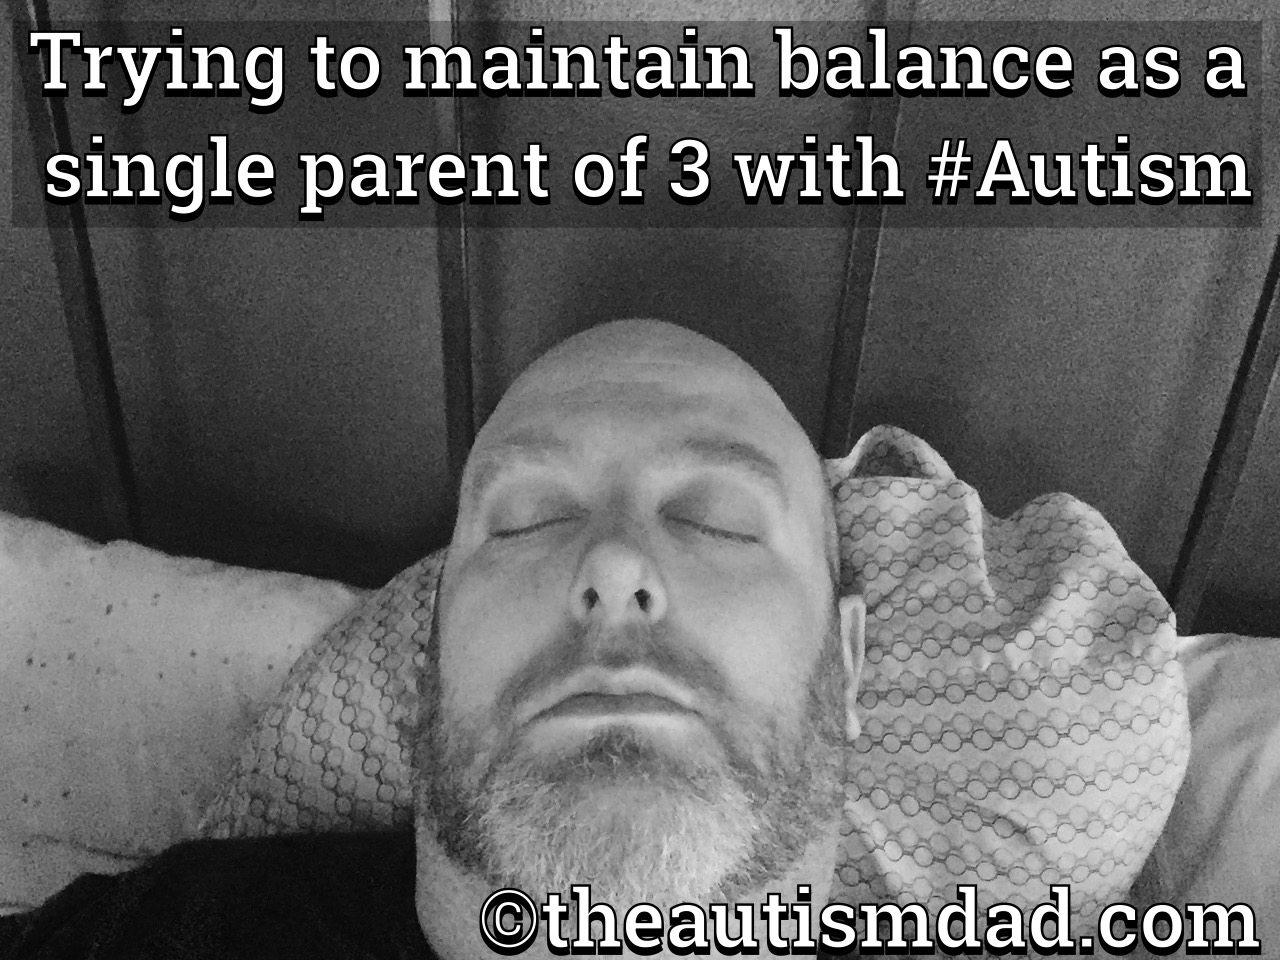 Trying to maintain balance as a single parent of 3 with #Autism